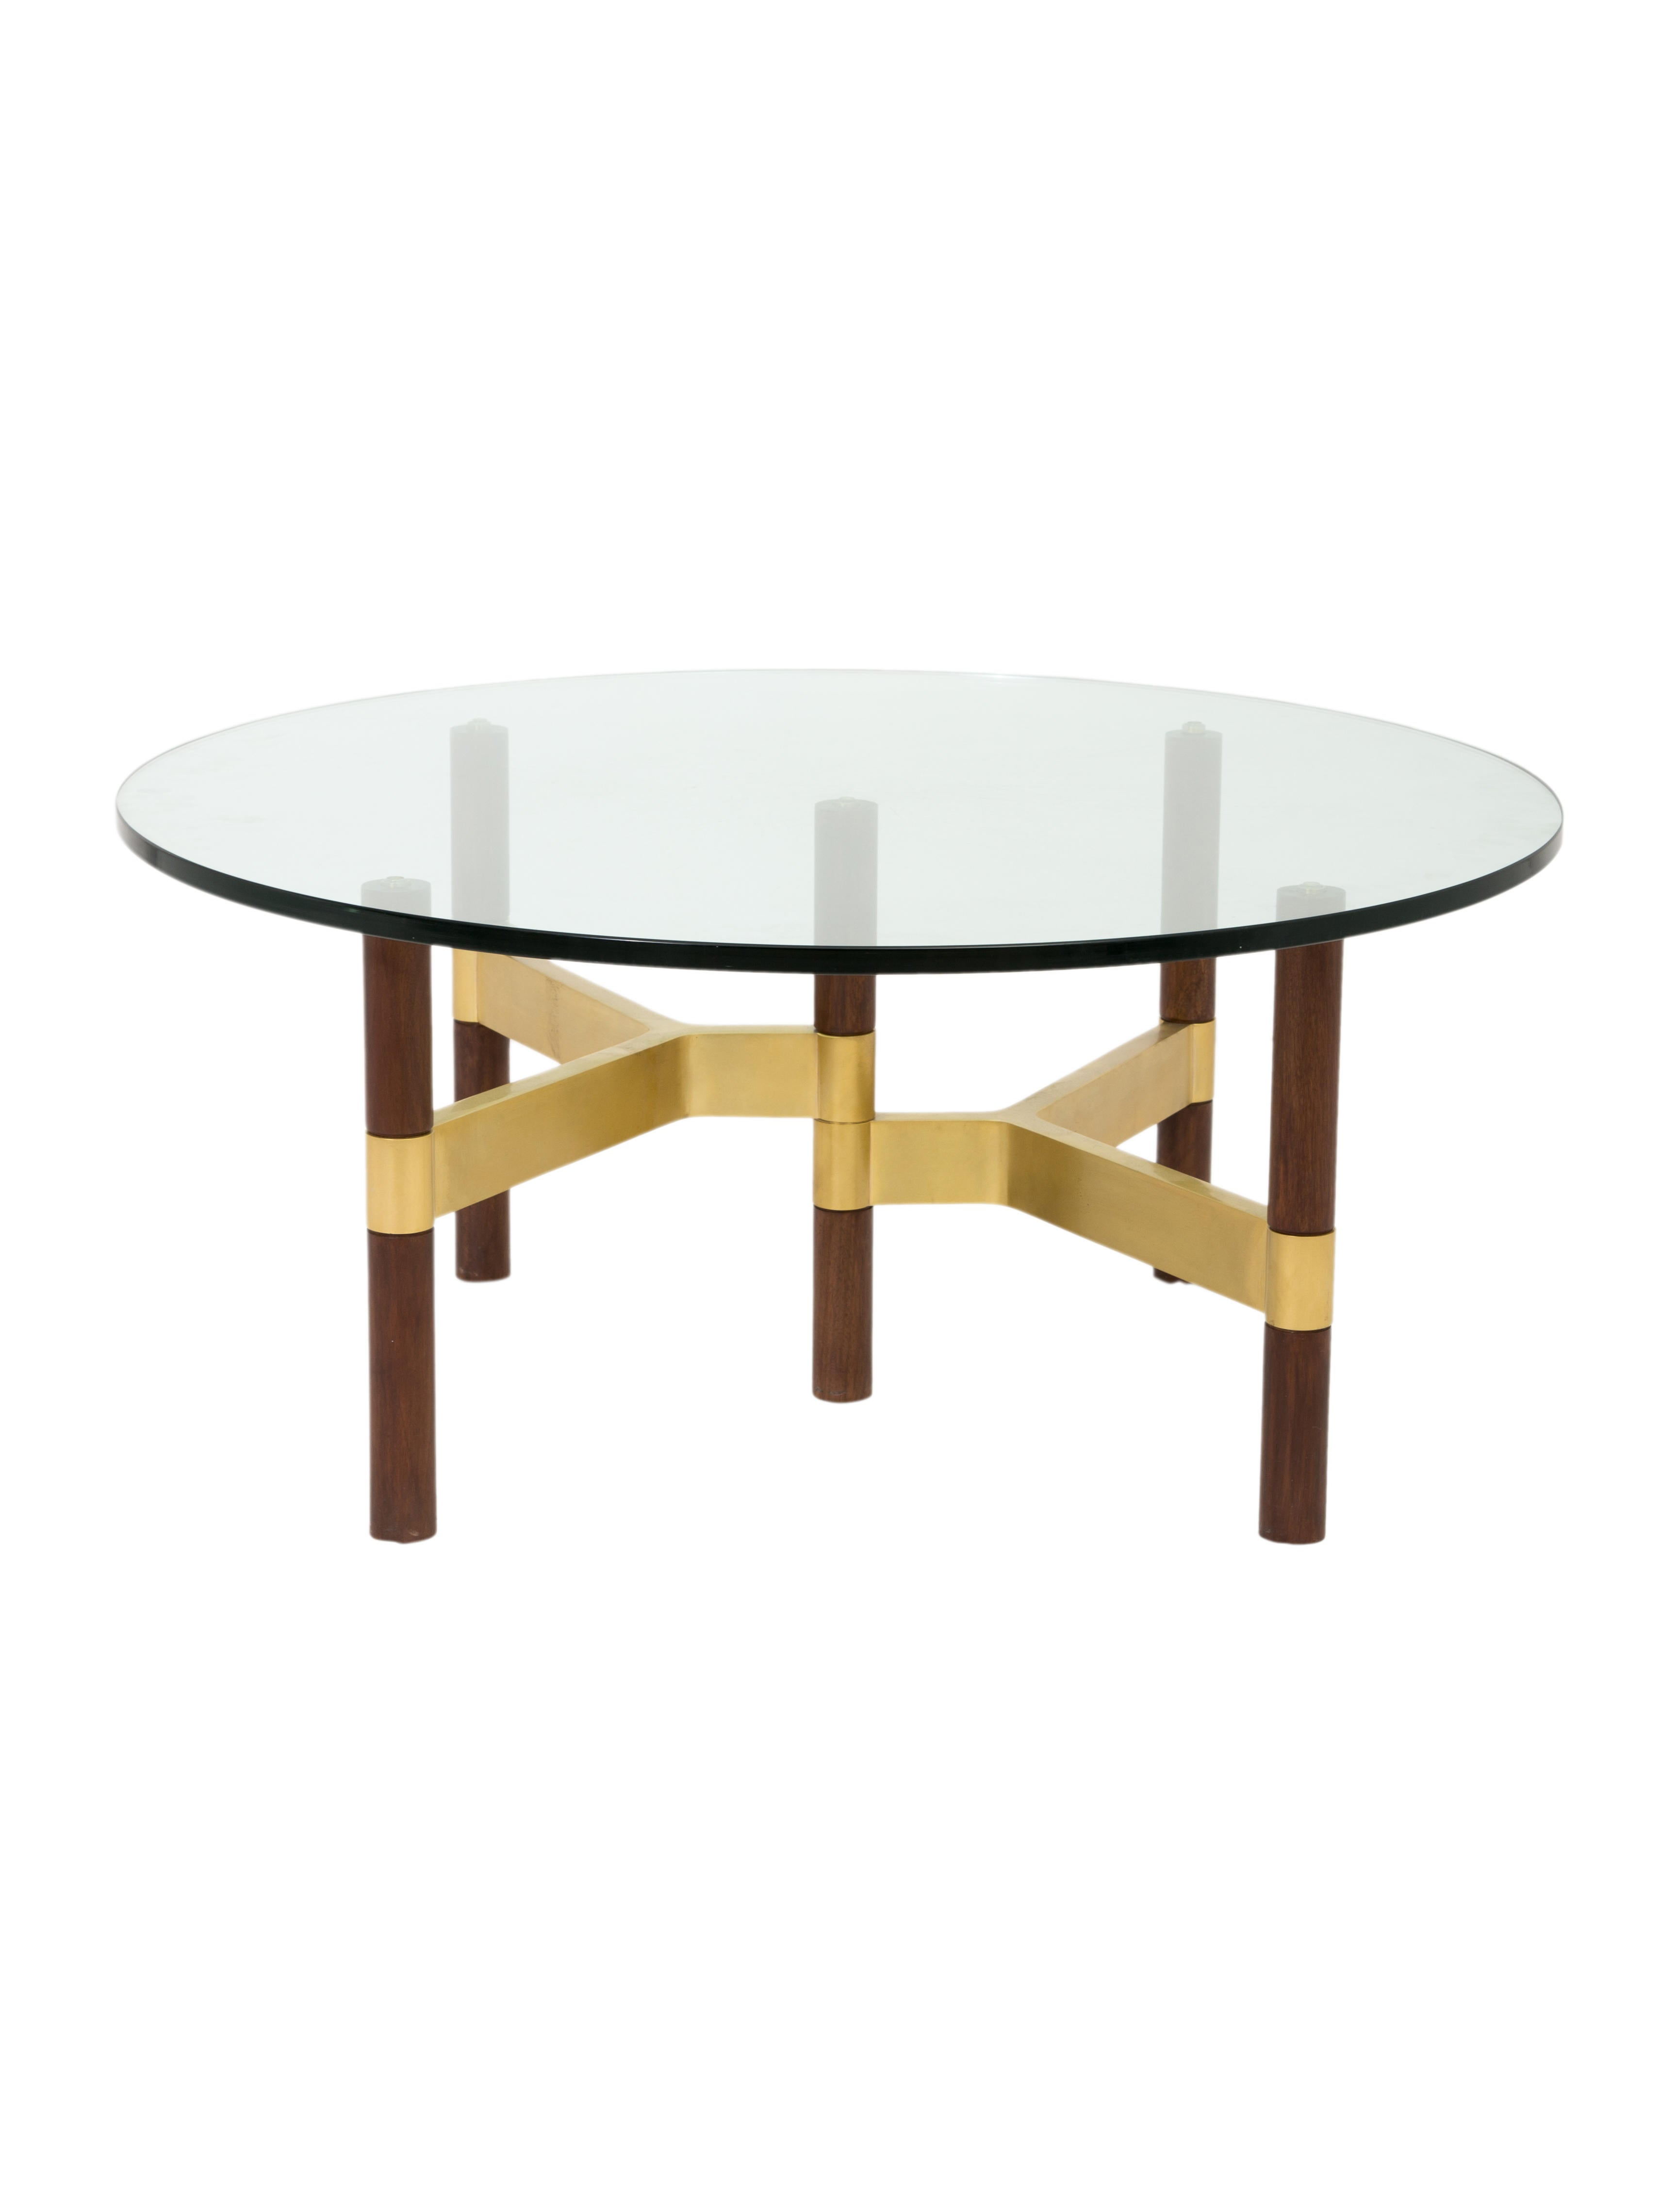 100 Laccio Coffee Table Coffee Table By Warren  : DESWR200071enlarged from 45.32.79.15 size 3456 x 4559 jpeg 216kB